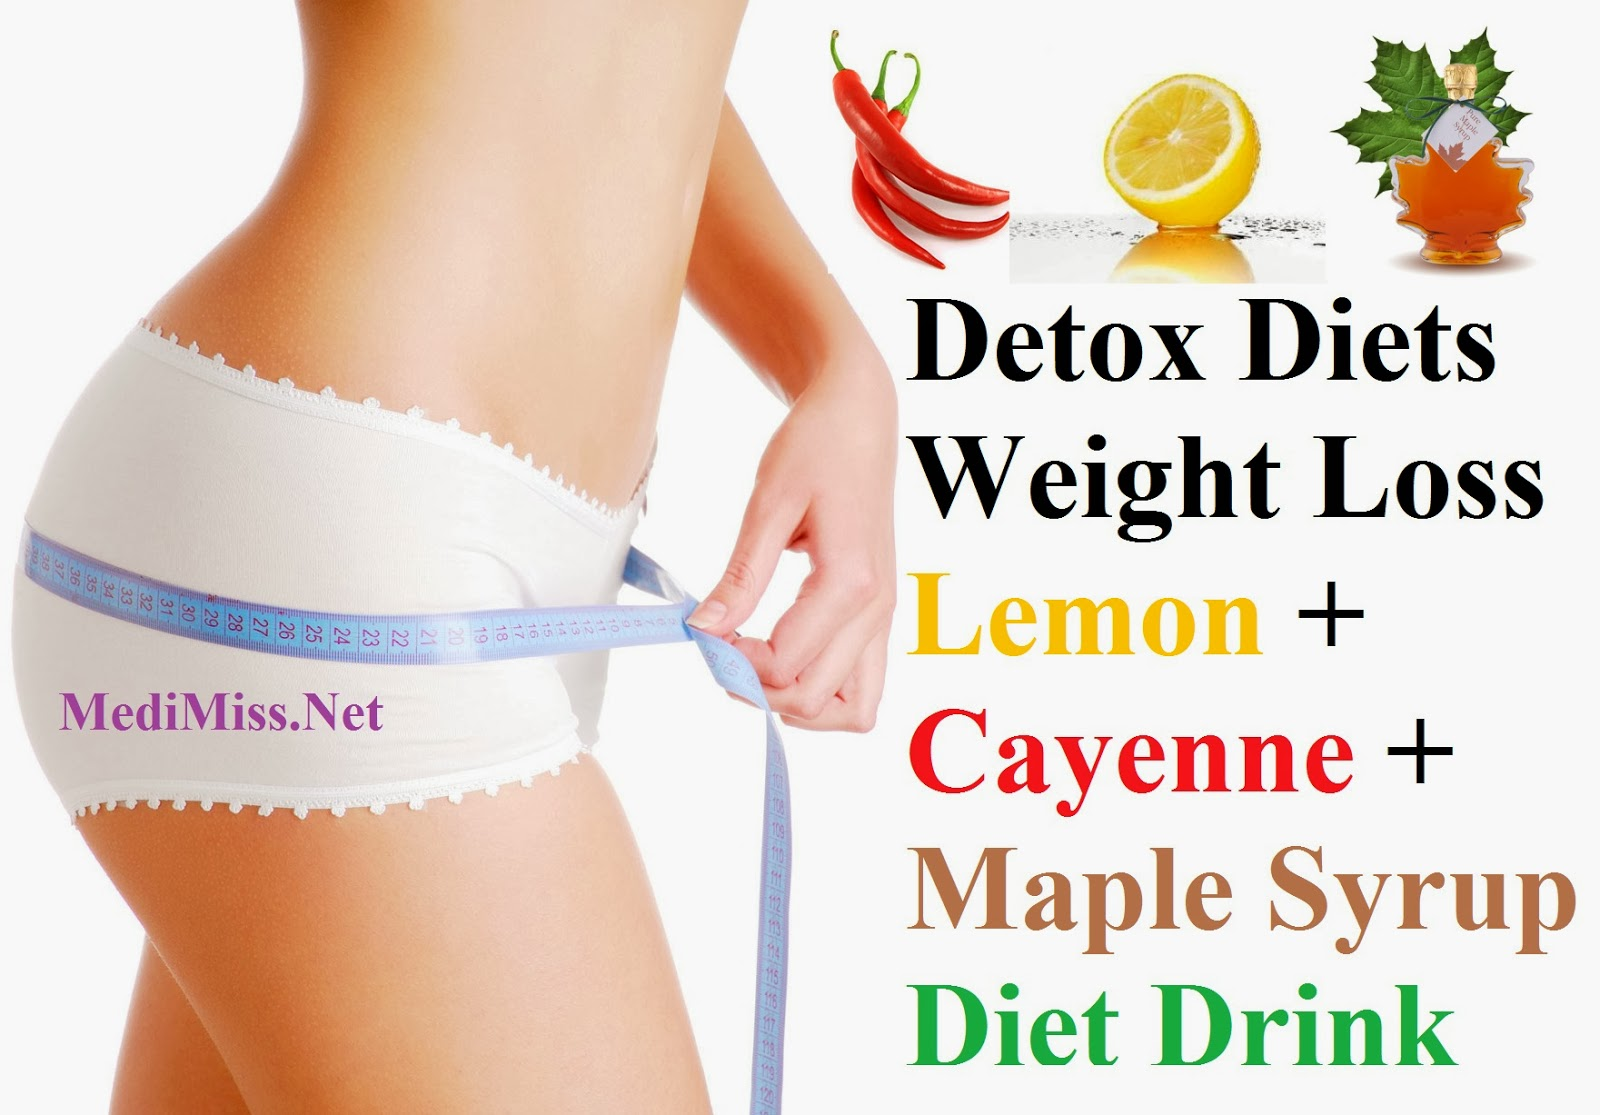 detoxing diets weight loss